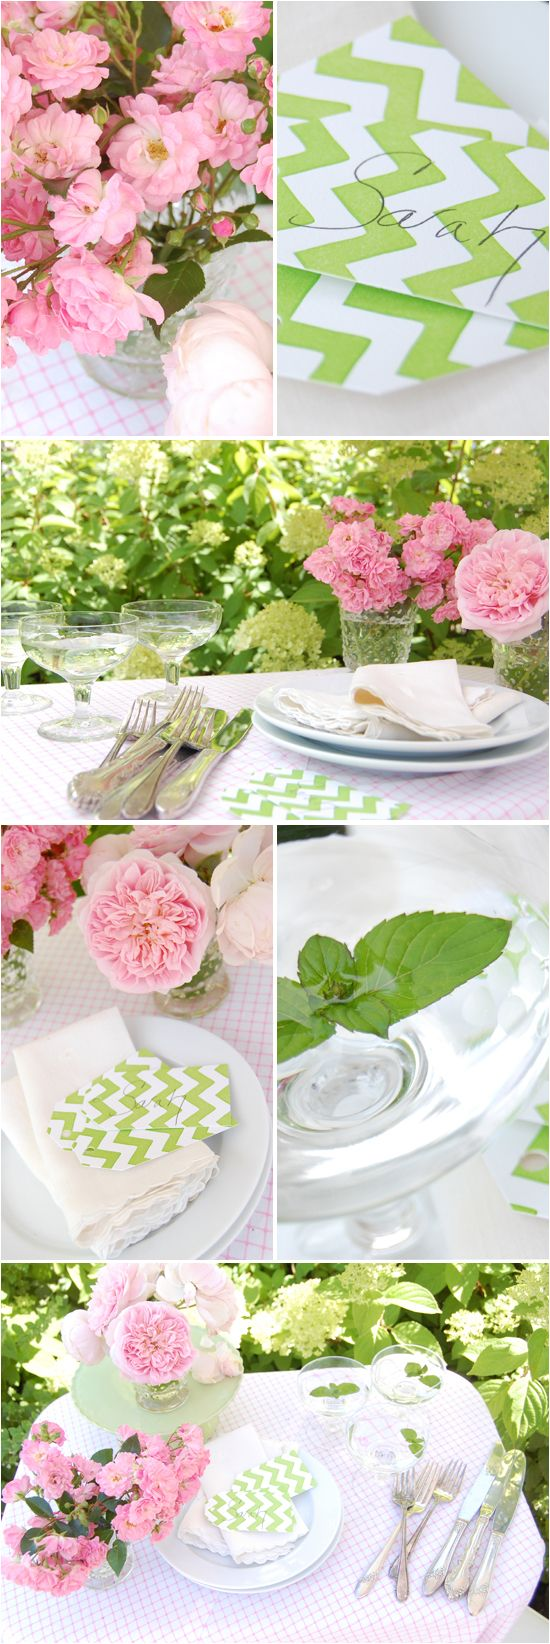 Mother's Day Brunch Inspiration | A Pink and Green Garden Wedding! - Project Wedding